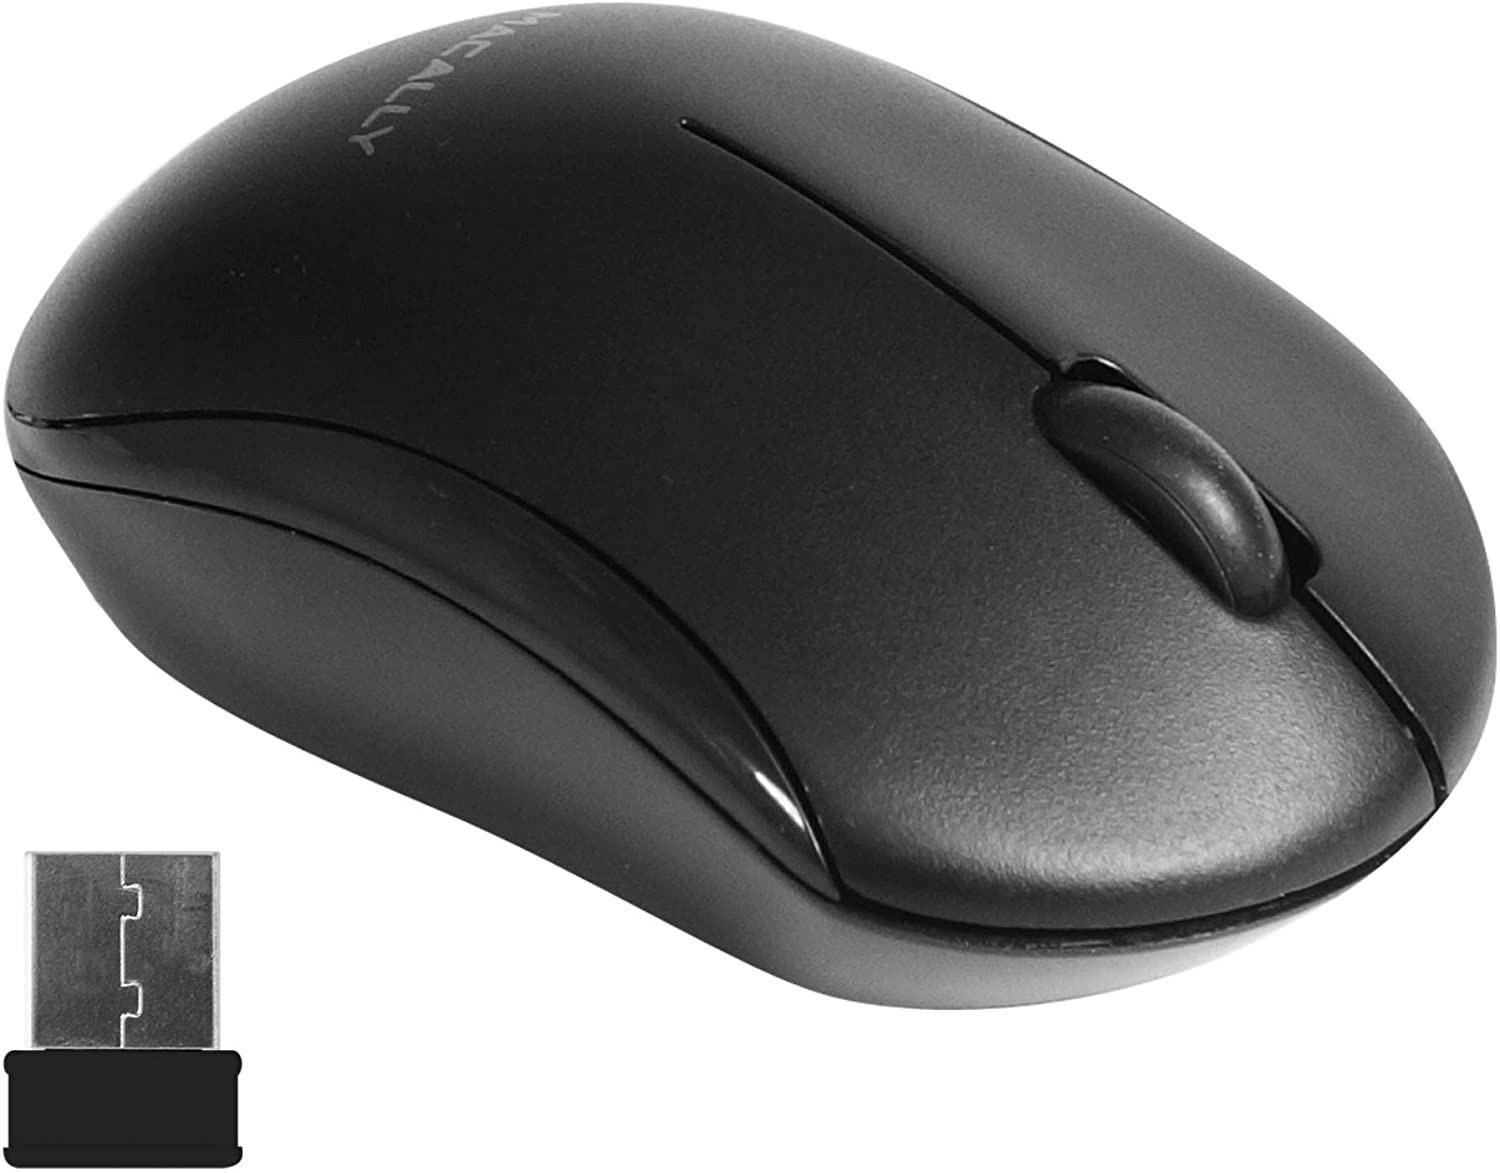 Macally 2.4G Wireless Mouse with 3 Button, Smooth Scroll Wheel, Dongle Receiver, Compatible with Desktop Computer Windows PC, Apple MacBook Pro/Air, iMac, Mac Mini, Laptops - Black, RFQMOUSEB